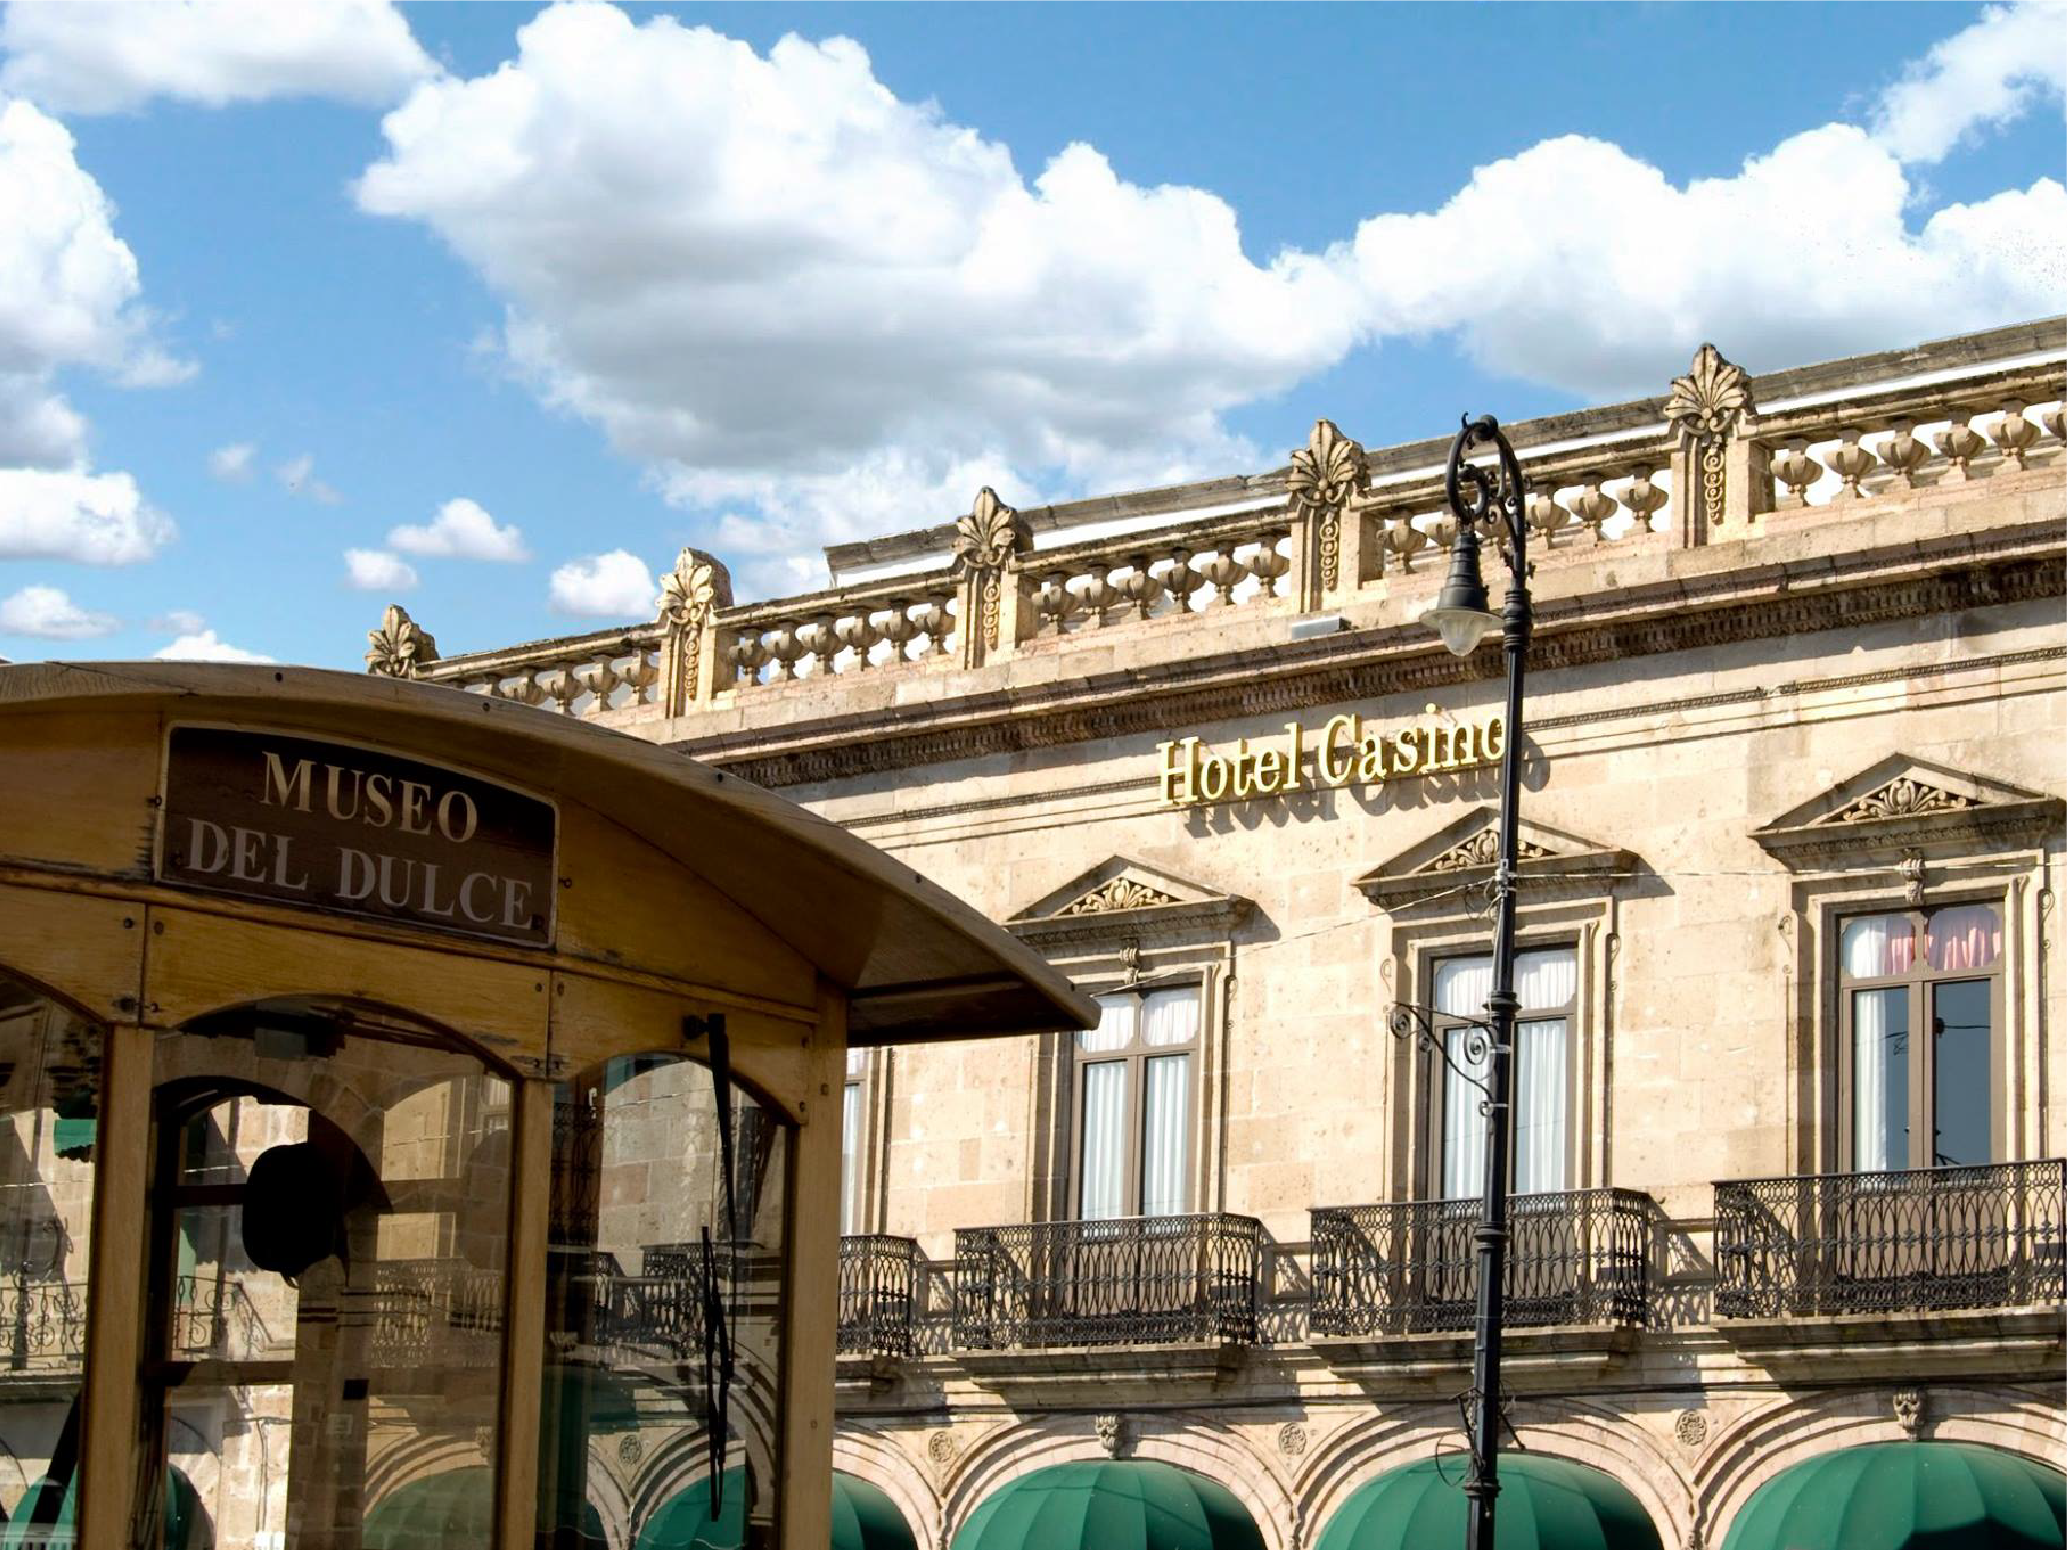 hotel Casino Morelia - Day 11. February 27 Second group arrive Mexico City at 4:00 am. Go to hotel. 07:30 leave hotel towards Ocampo to see Mariposas Monarcas. Visit Patzcuro and overnight Morelia. Day 12. February 28 Full day Morelia city tour. Overnight